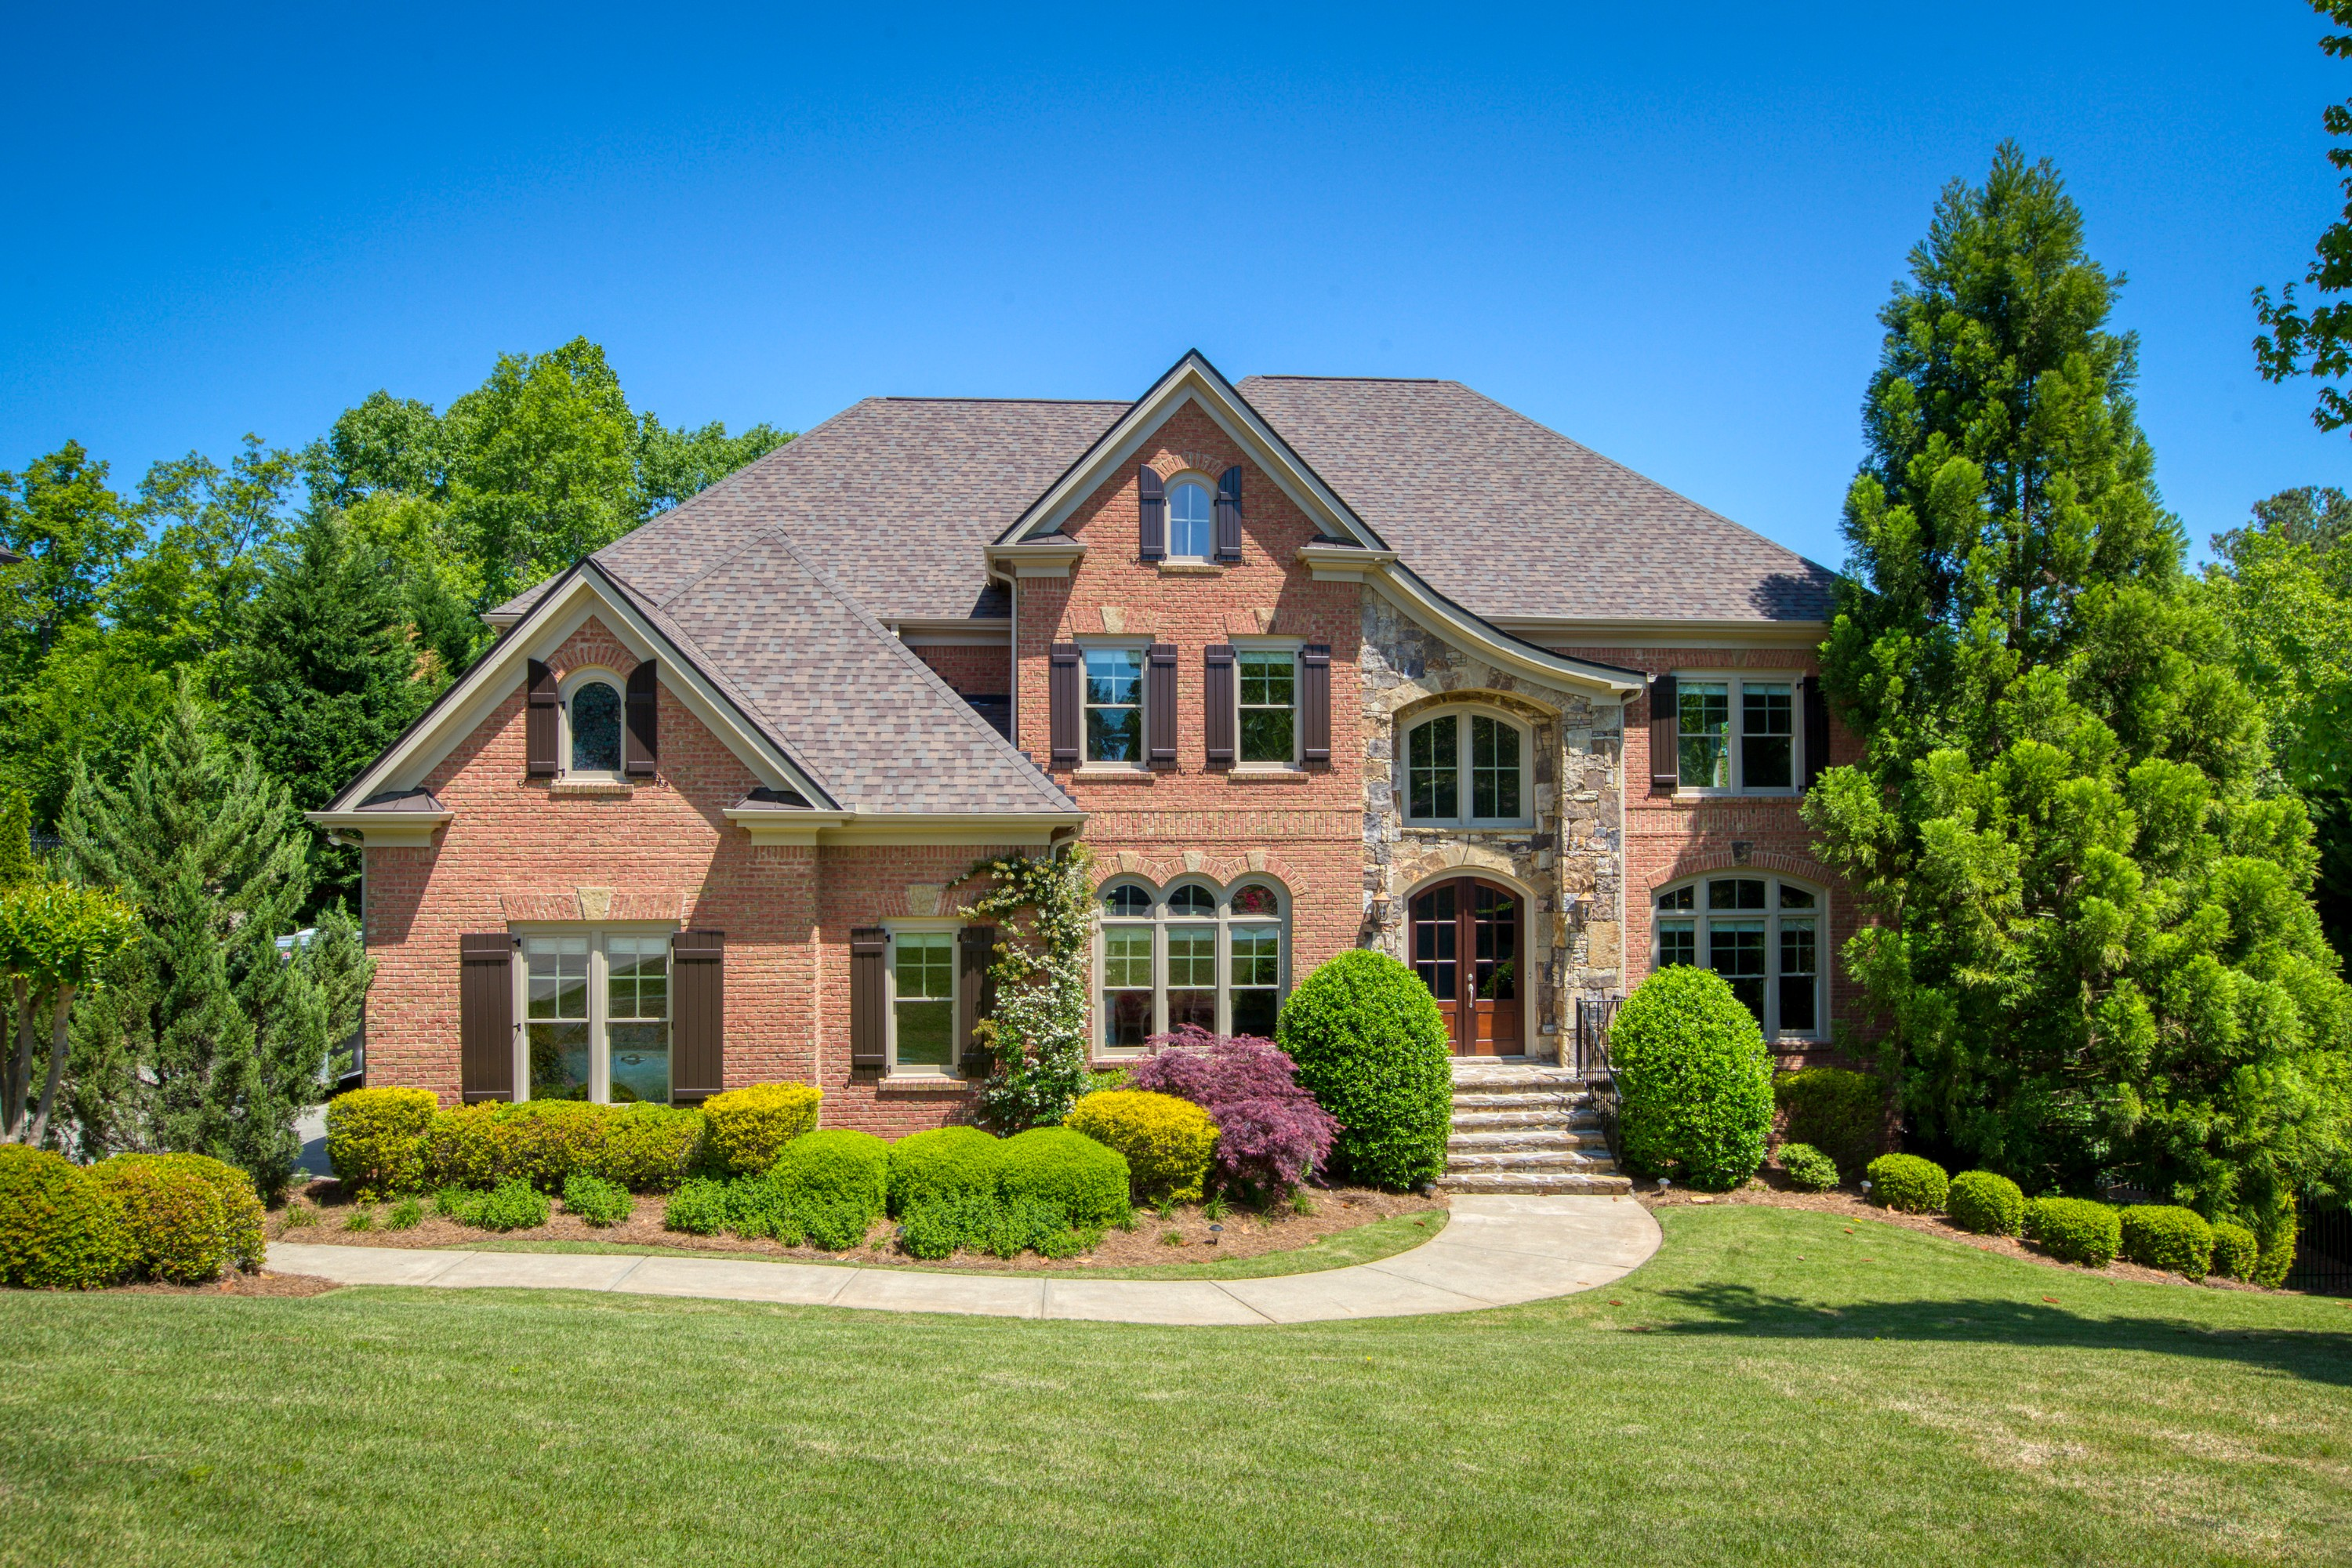 Live In Serenity In This Gorgeous, Custom-Built Beauty!